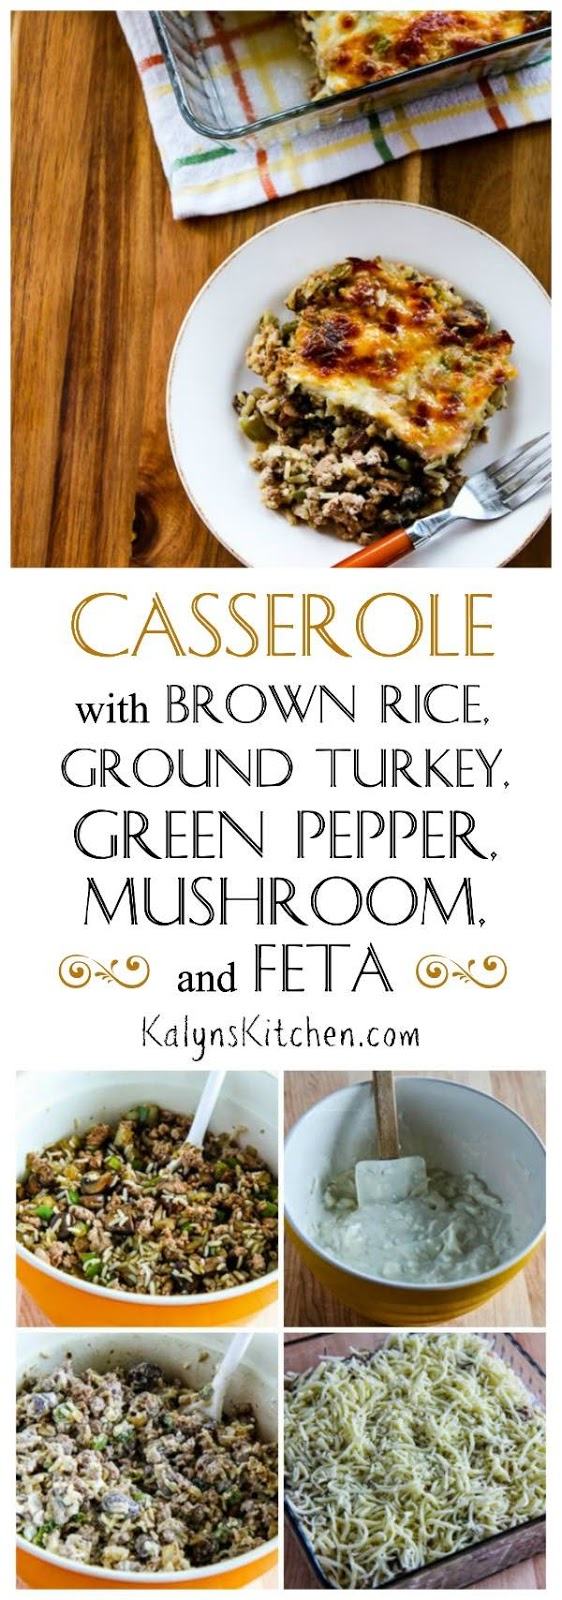 Casserole with Brown Rice, Ground Turkey, Green Pepper, Mushrooms ...